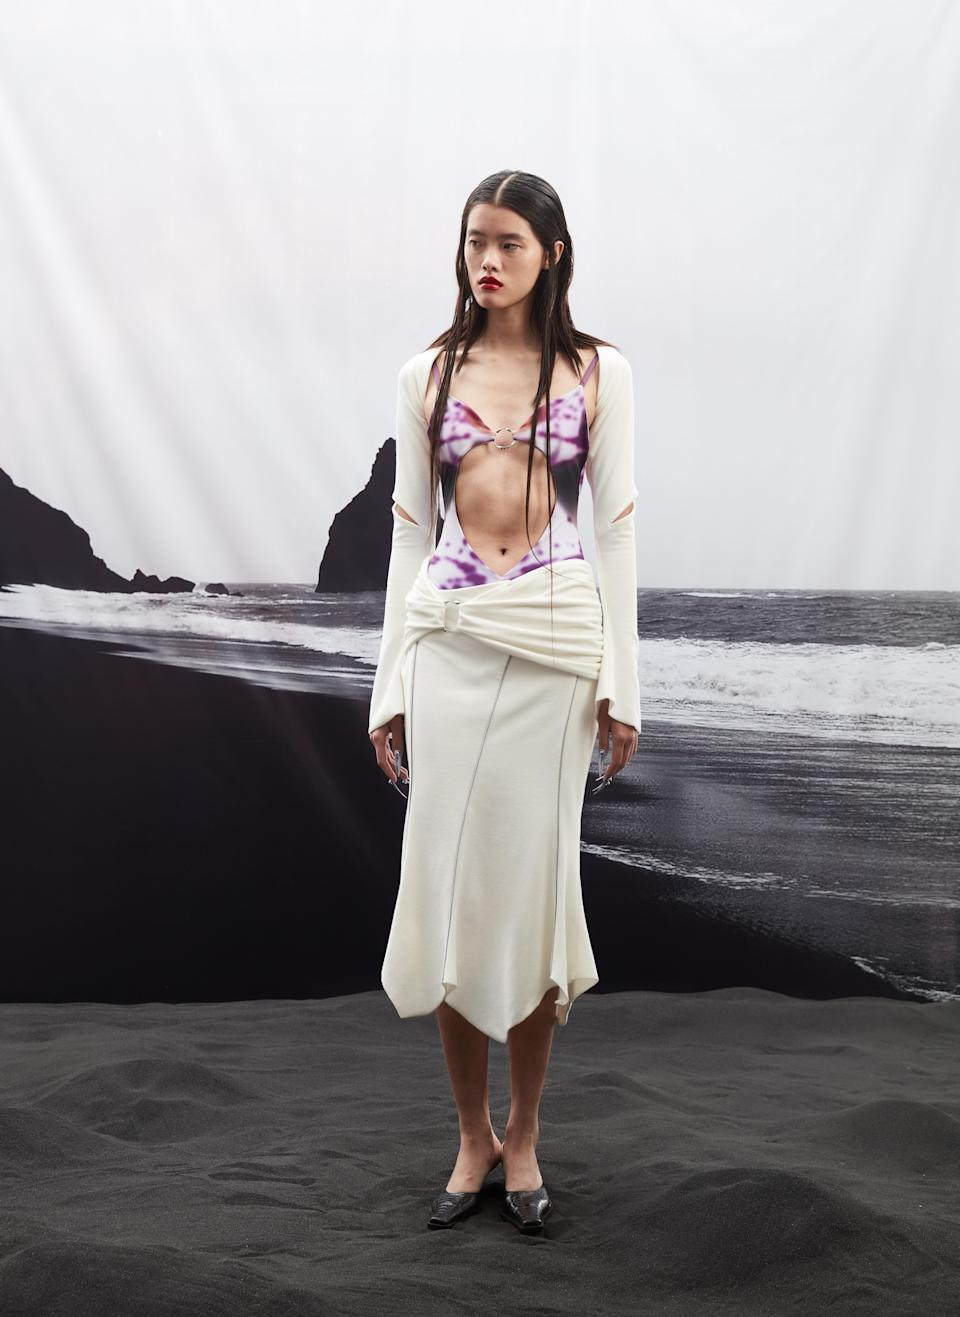 A look from Didu's spring 2022 collection. - Credit: Zhongjia Sun/Courtesy of Didu